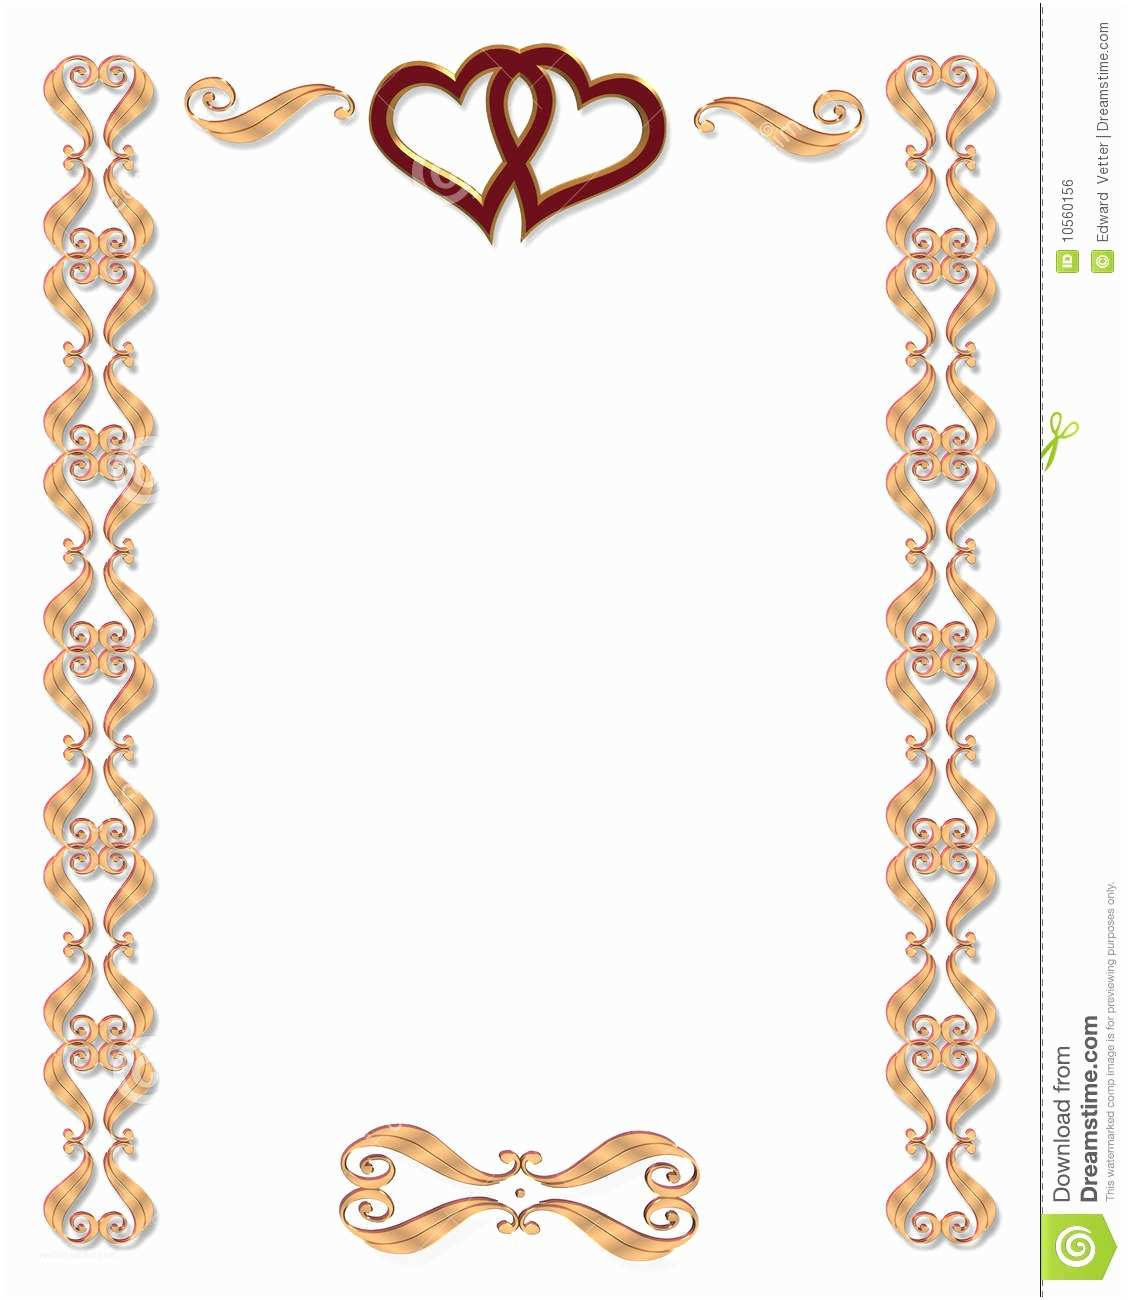 Wedding Invitation Frame Wedding Invitation Borders Clip Art for Free – 101 Clip Art